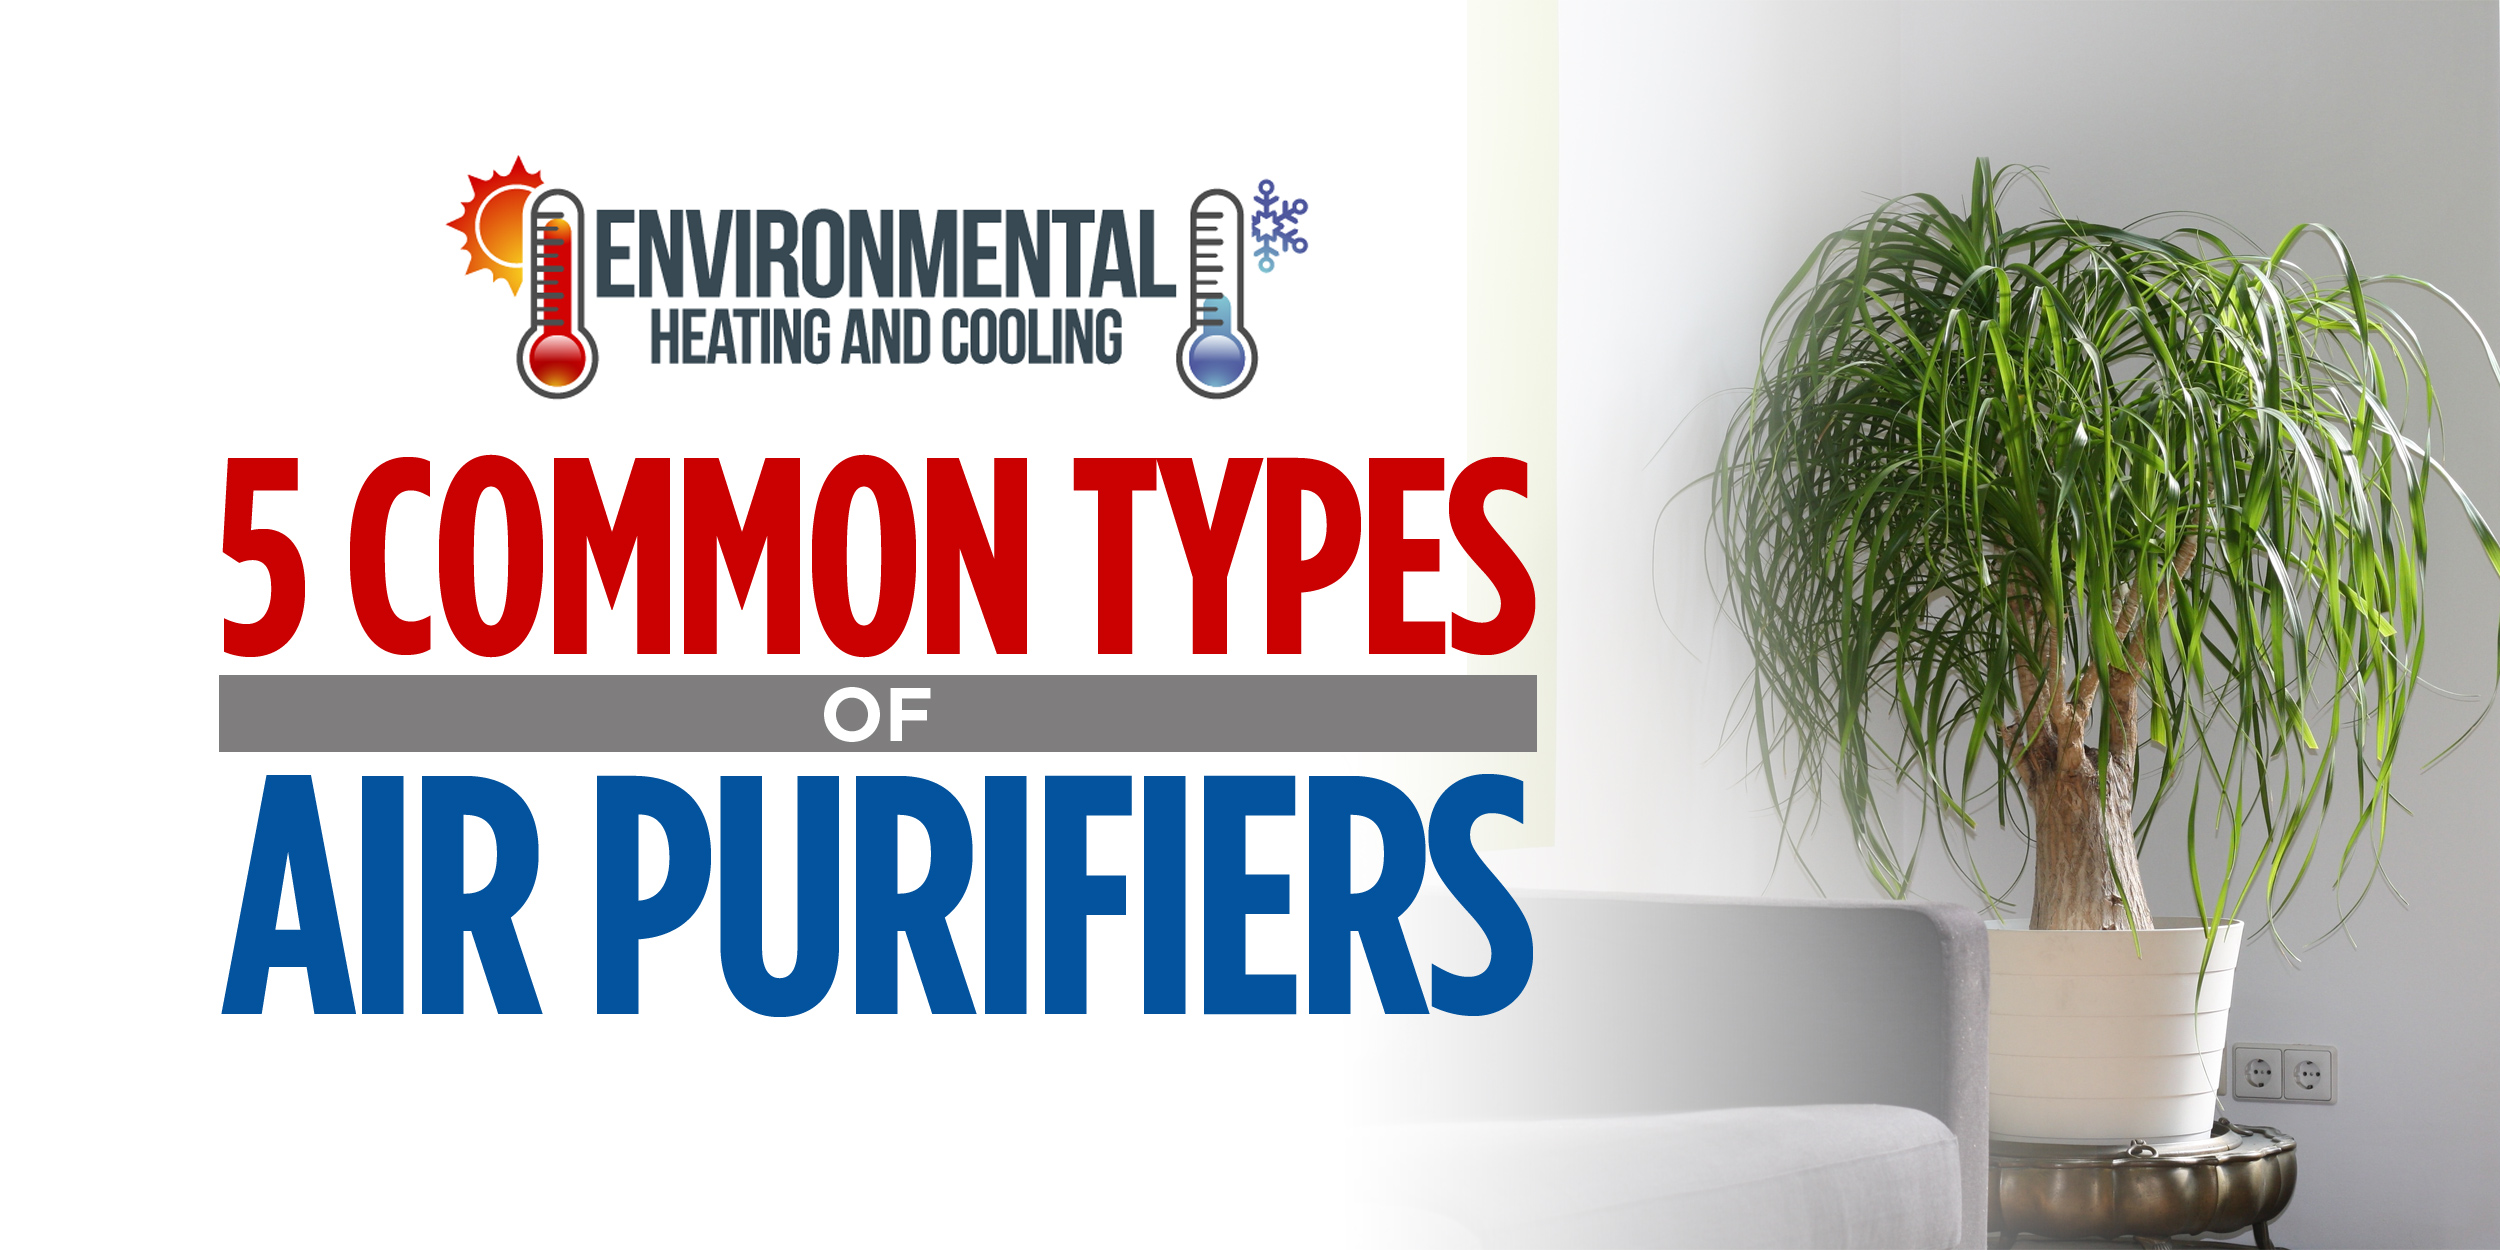 5 Common Types of Air Purifiers